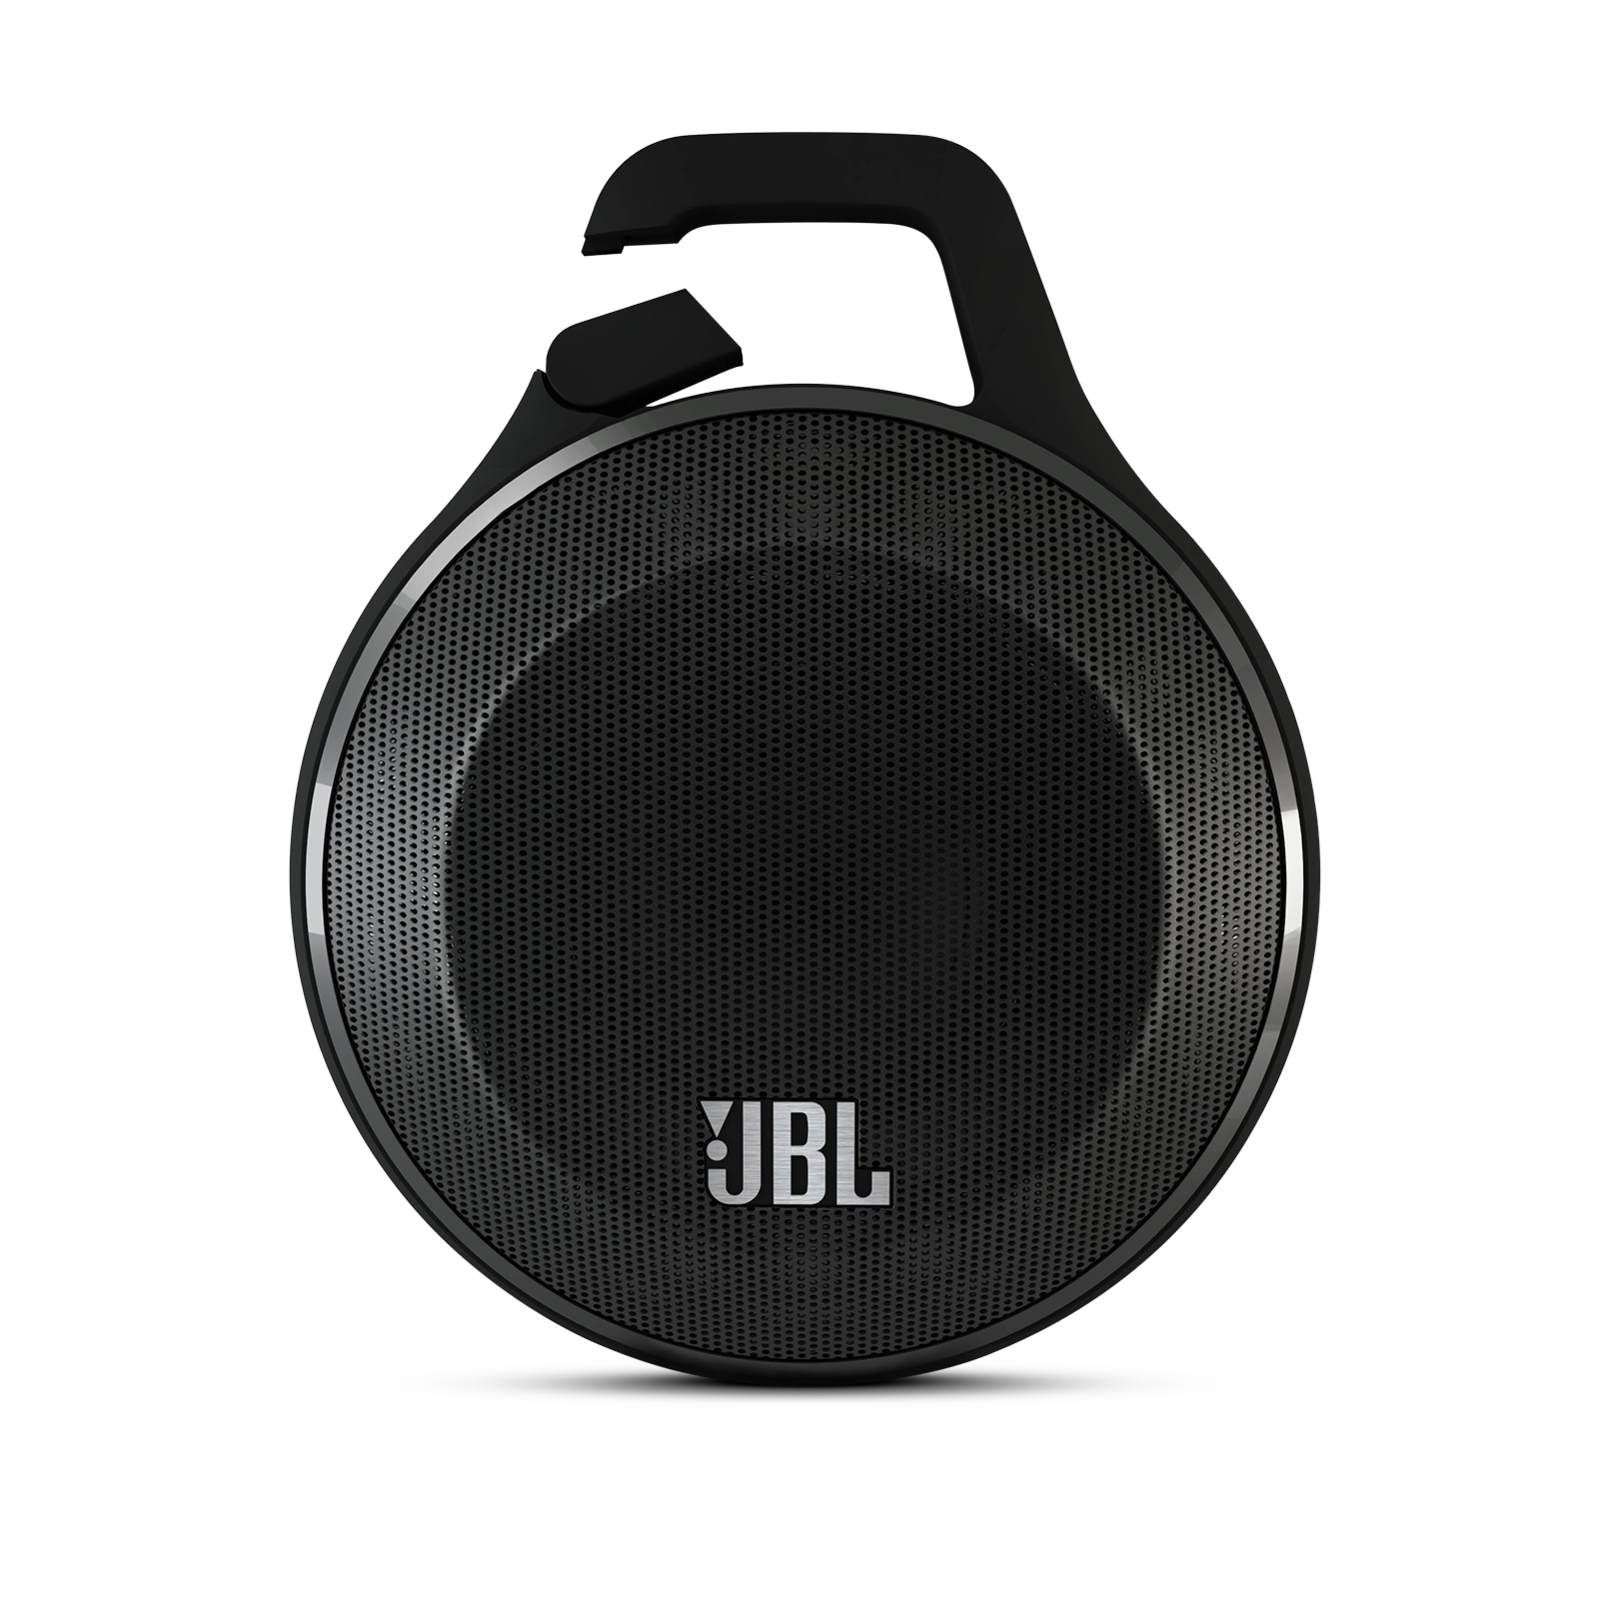 Jbl Clip Ultra Portable Bluetooth Speaker With Carabiner